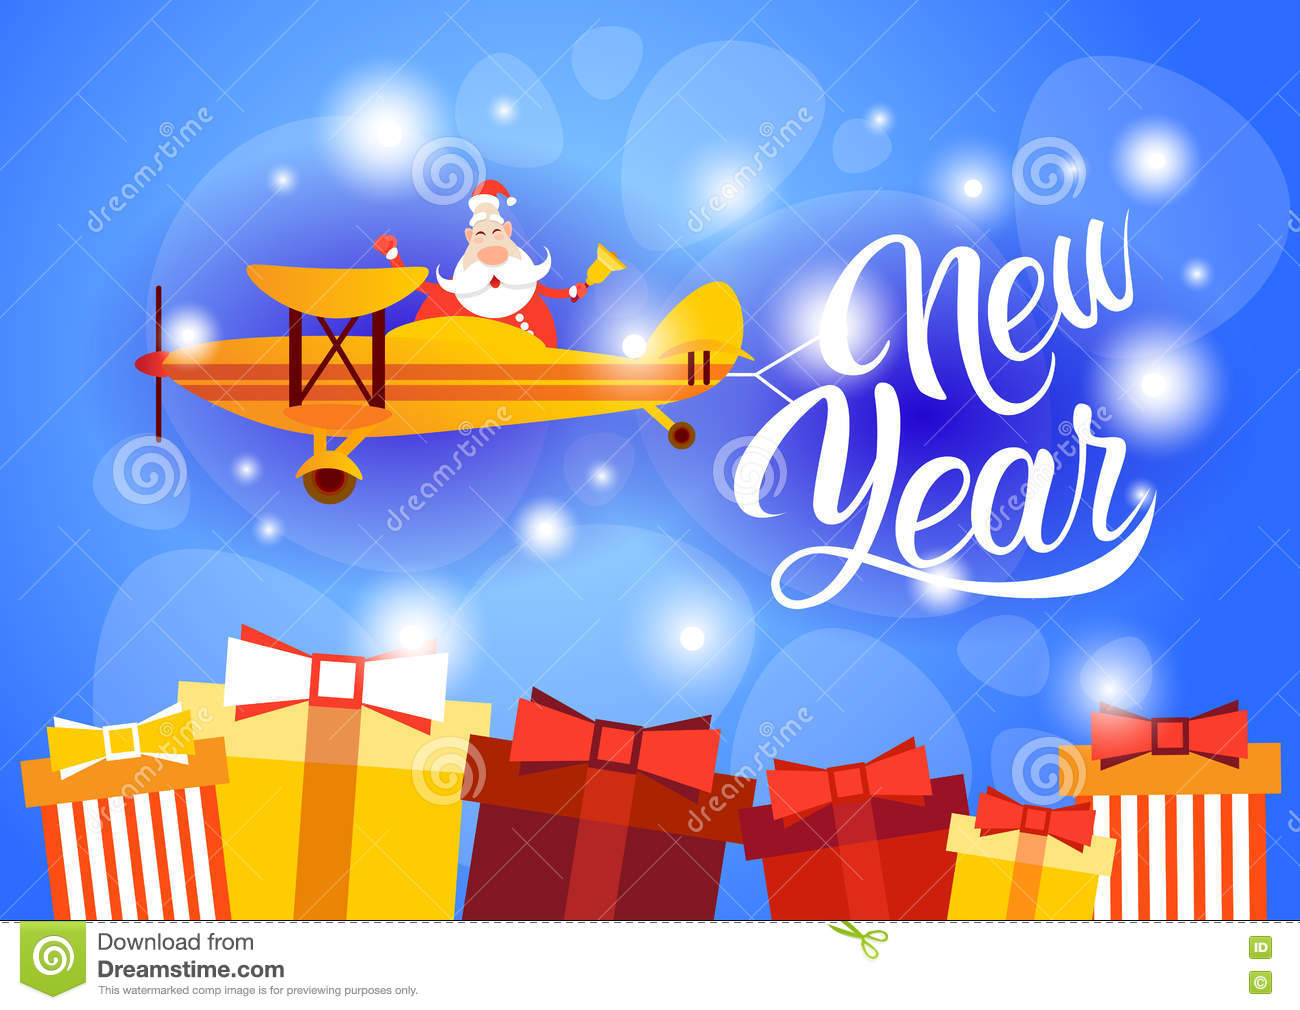 santa clause flying airplane happy new year decoration greeting card celebration banner